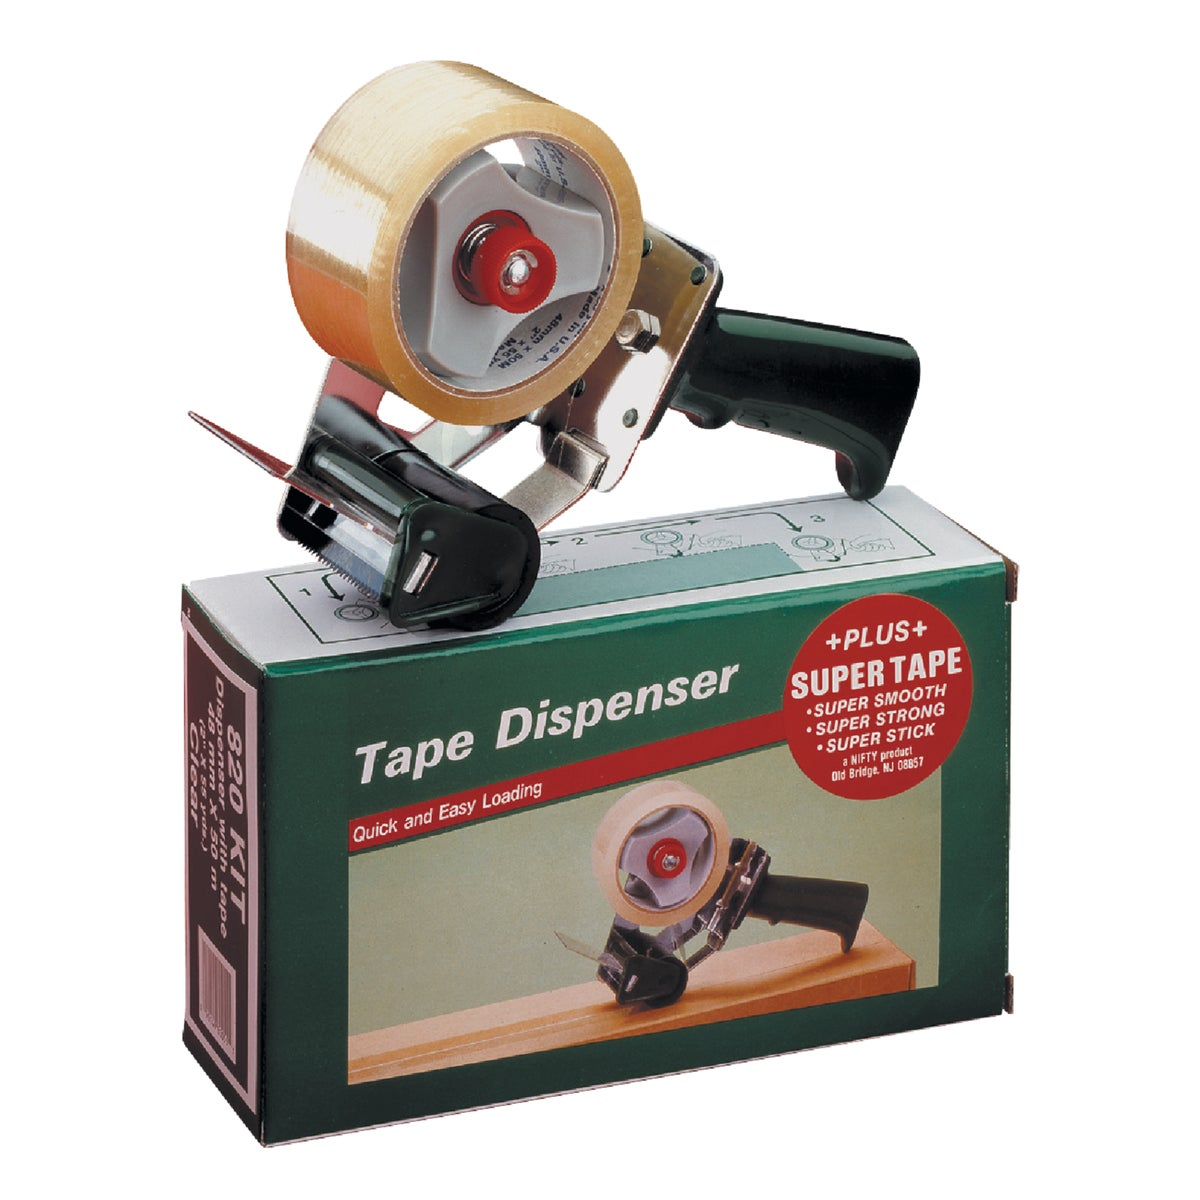 "2"" TAPE W/DISPENSER - D820KIT by Nifty Products"